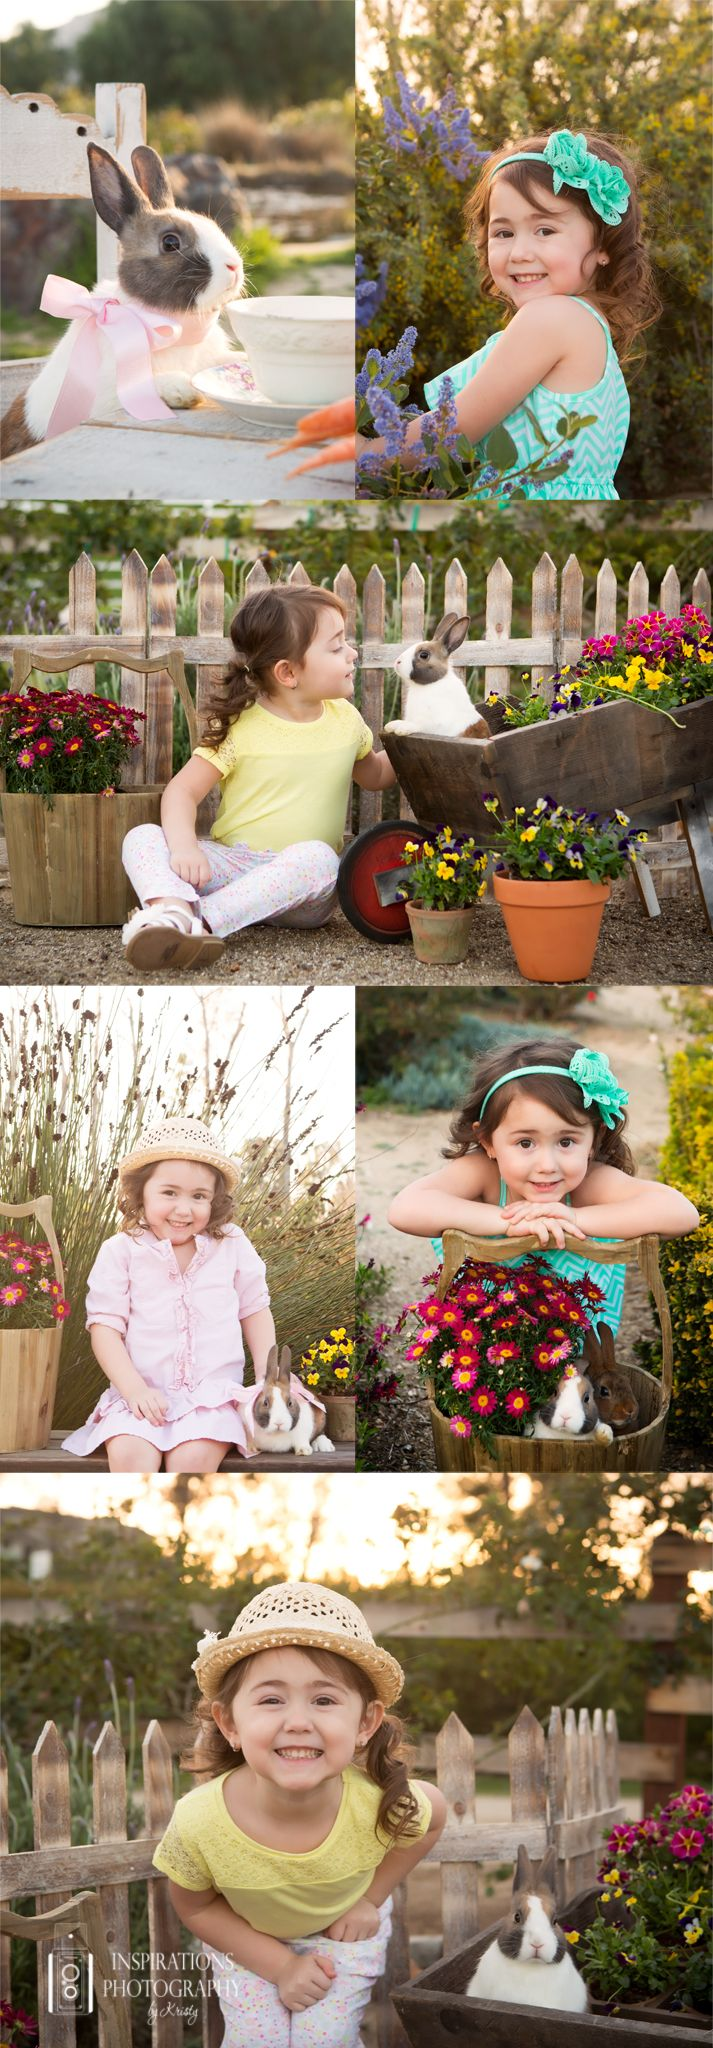 Spring photos, bunnies, Spring, flowers, outdoor photography, mini session, picket fence, Spring photography, Inspirations Photography by Kristy, Temecula, CA.